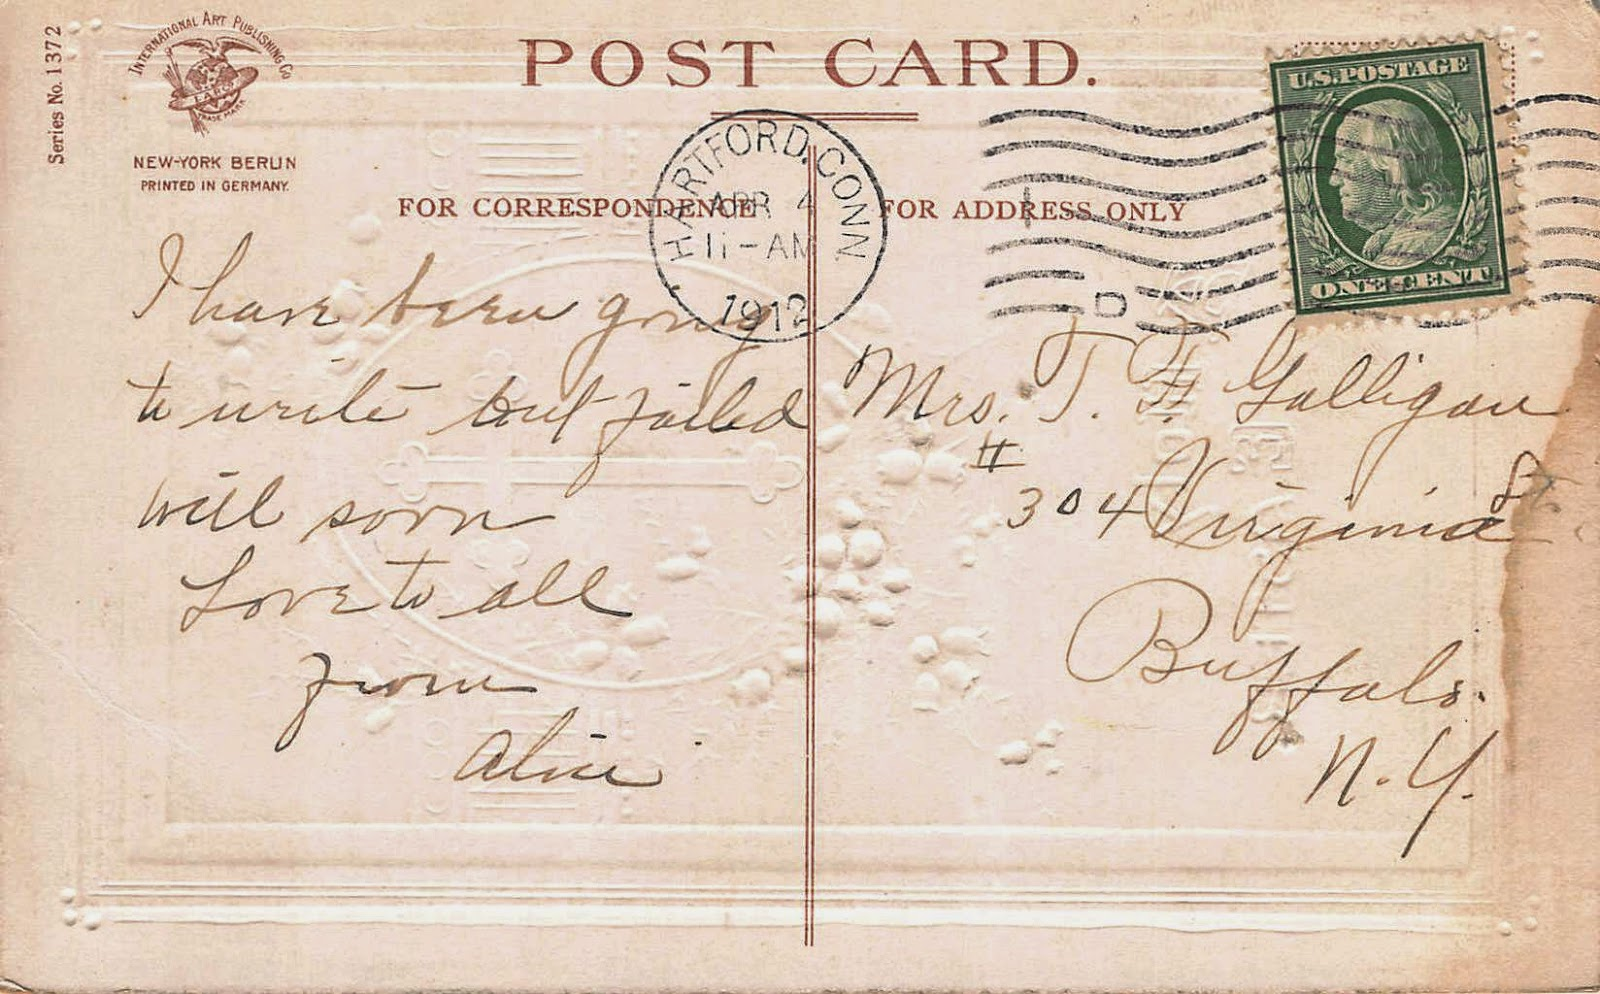 Olive tree genealogy blog easter postcard buffalo new york 1912 easter card to mrs t f galligan 304 virginia st buffalo new york from alice 1912 fandeluxe Gallery